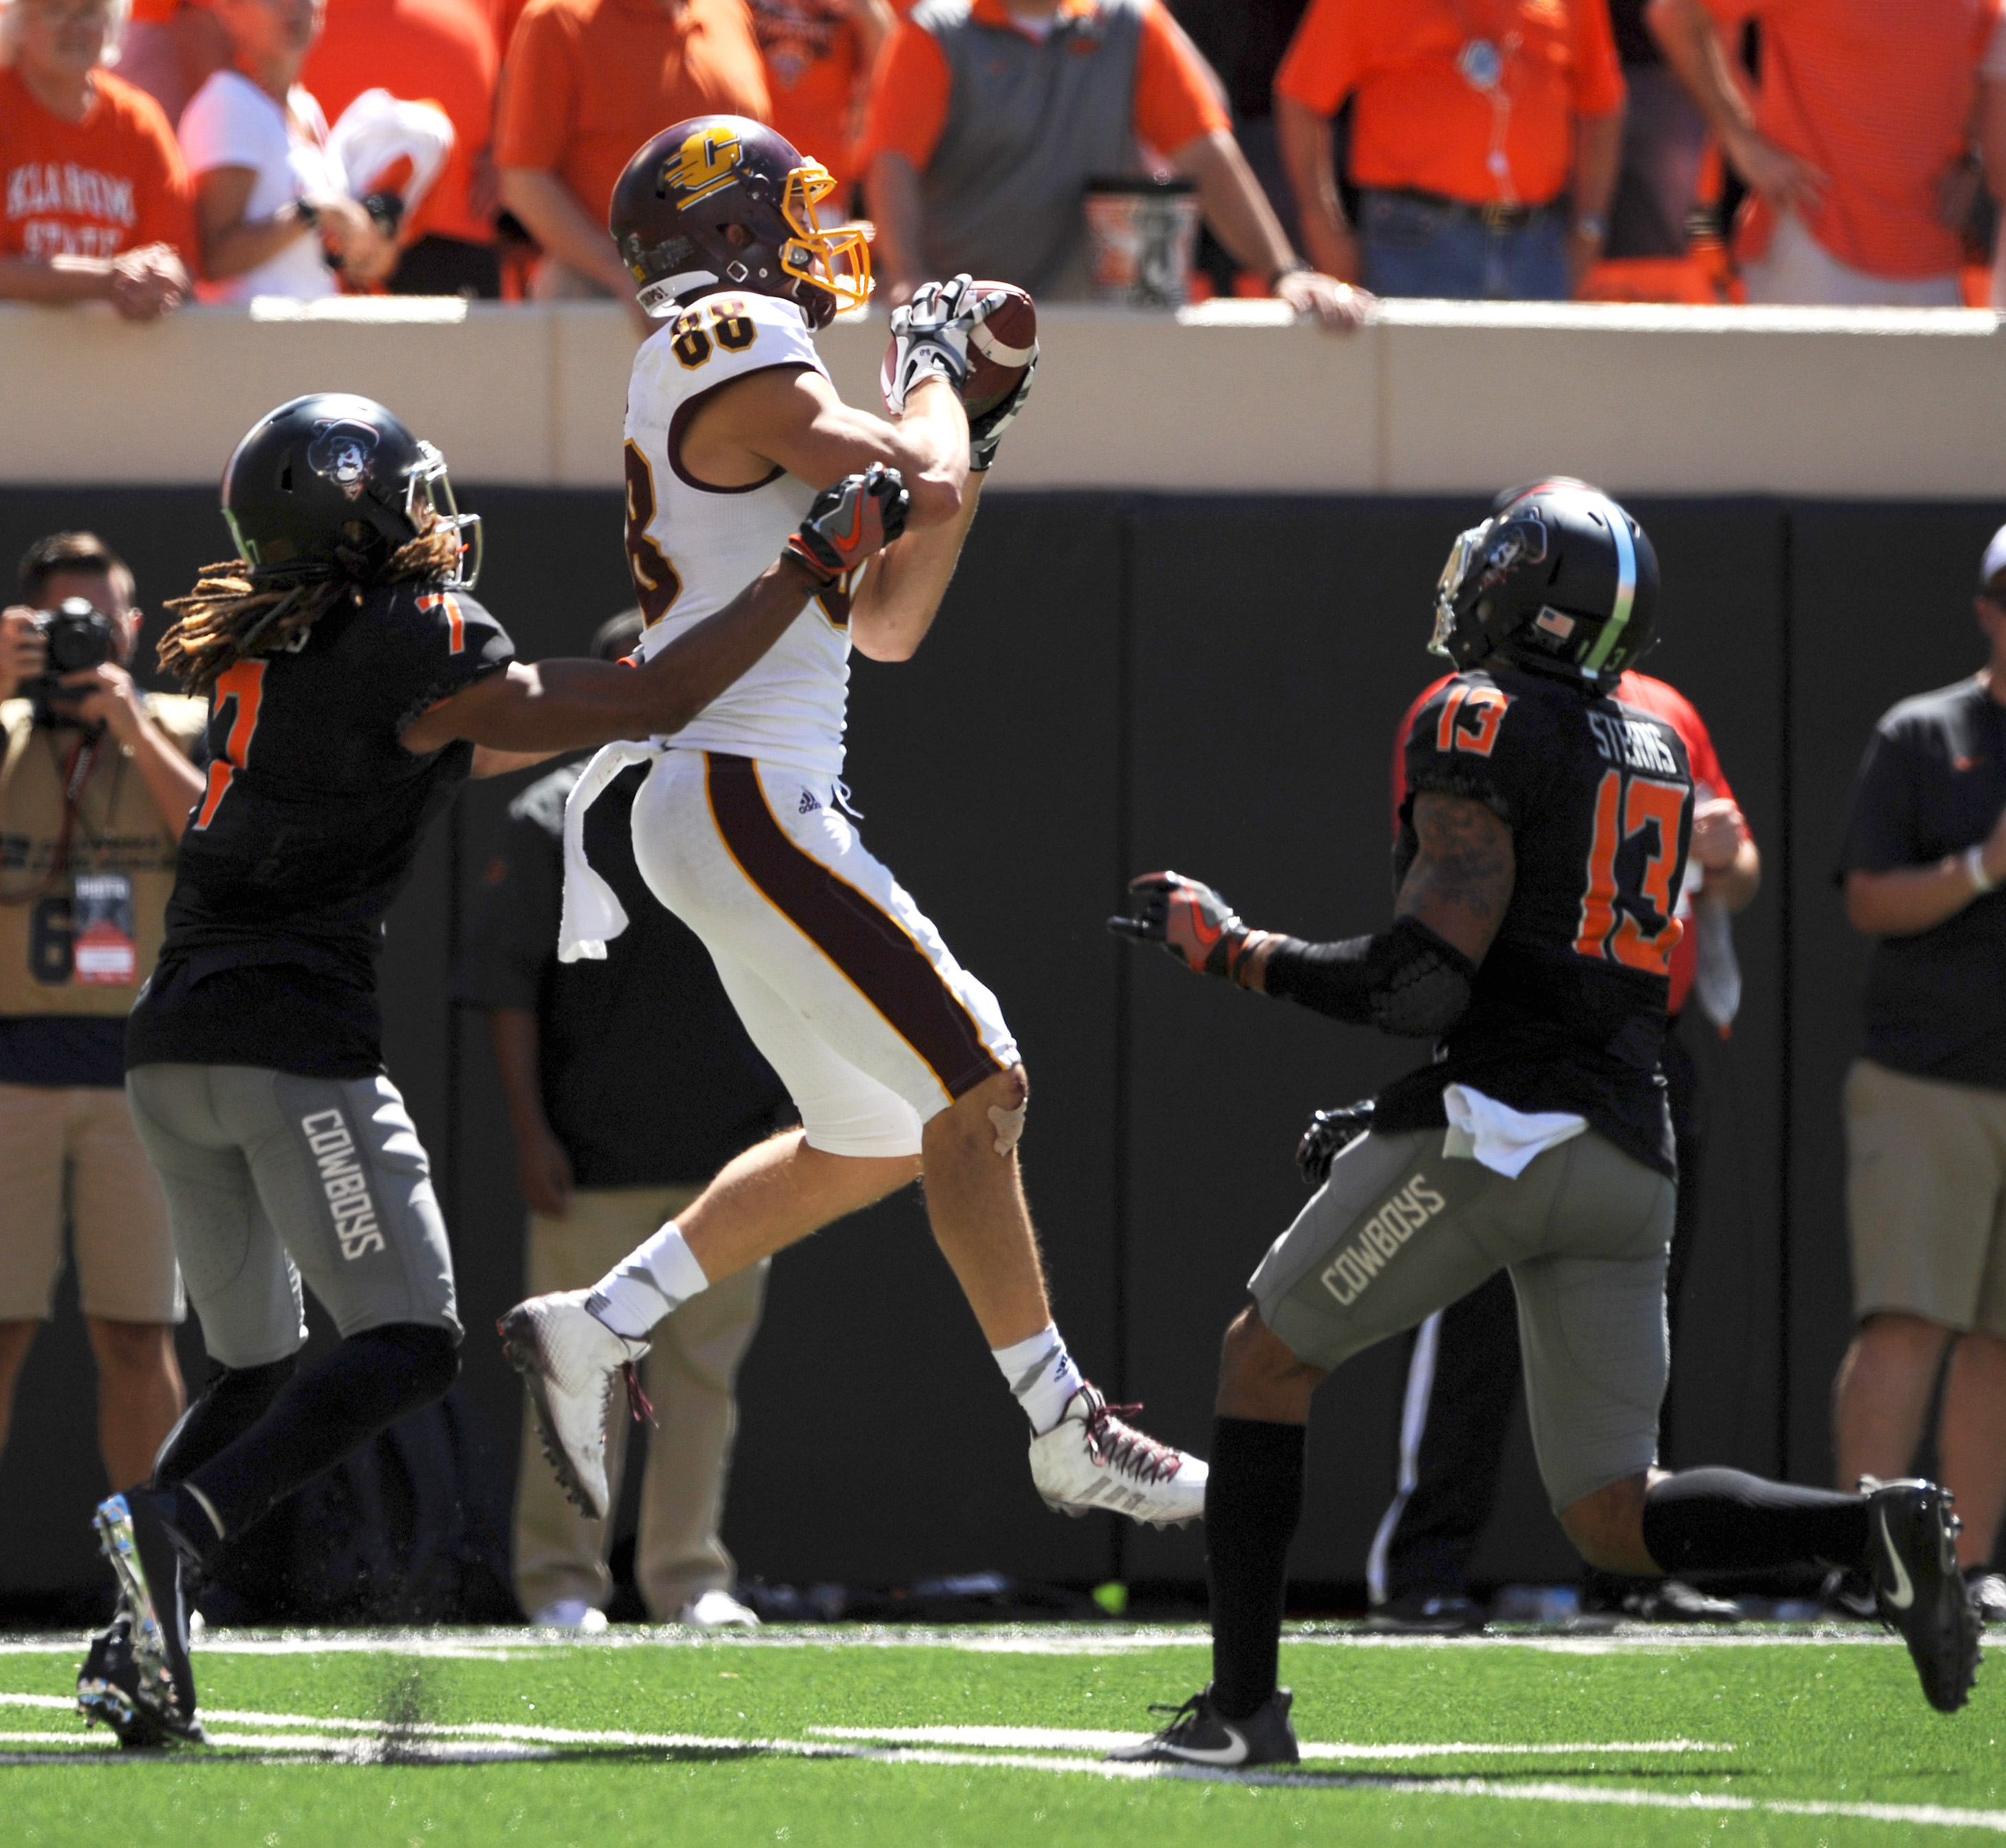 Oklahoma State safety Jordan Sterns, right, watches as Central Michigan wide receiver Jesse Kroll, center, catches a pass while being tackled by Oklahoma State corner back Ramon Richards, during the final play of an NCAA college football game in Stillwate